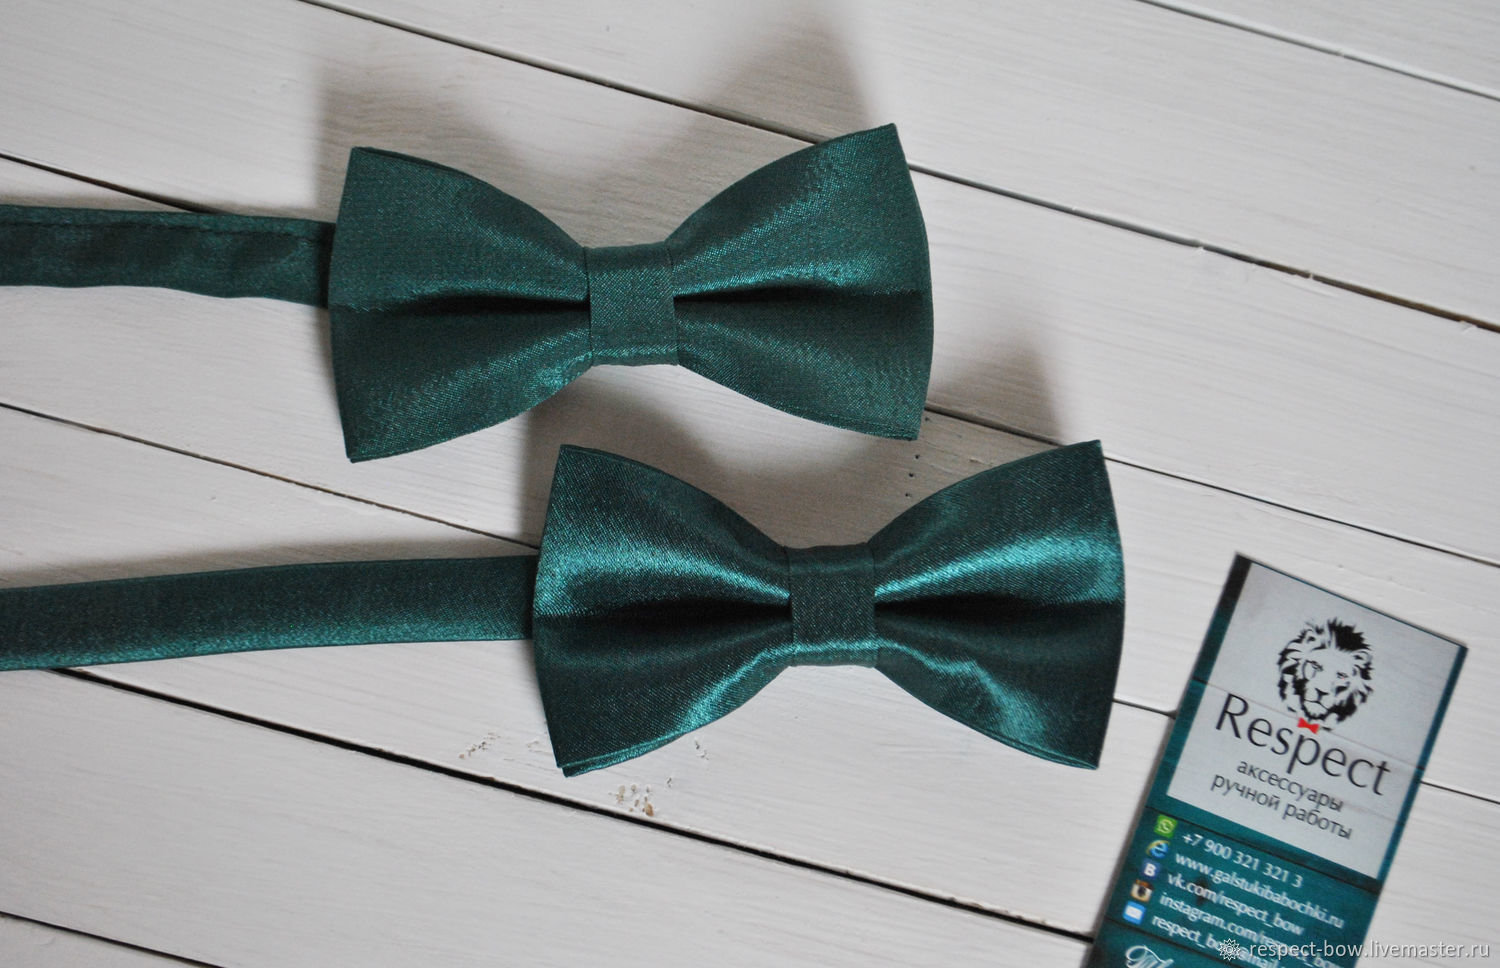 Dark green butterfly tie in glossy and Mat versions to choose